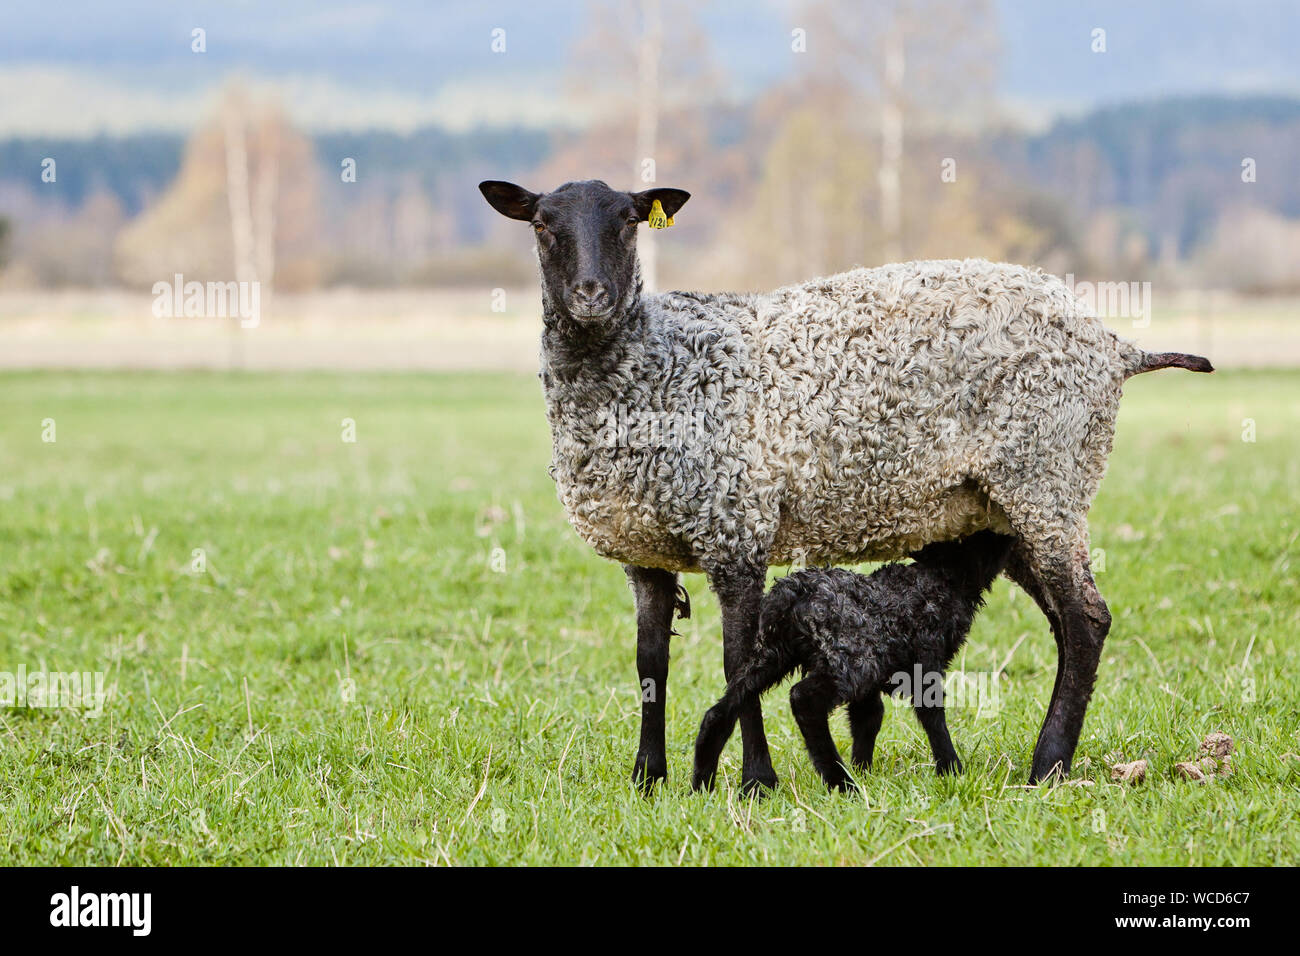 Portrait Of Sheep With Lamb Standing On Grassy Field Stock Photo